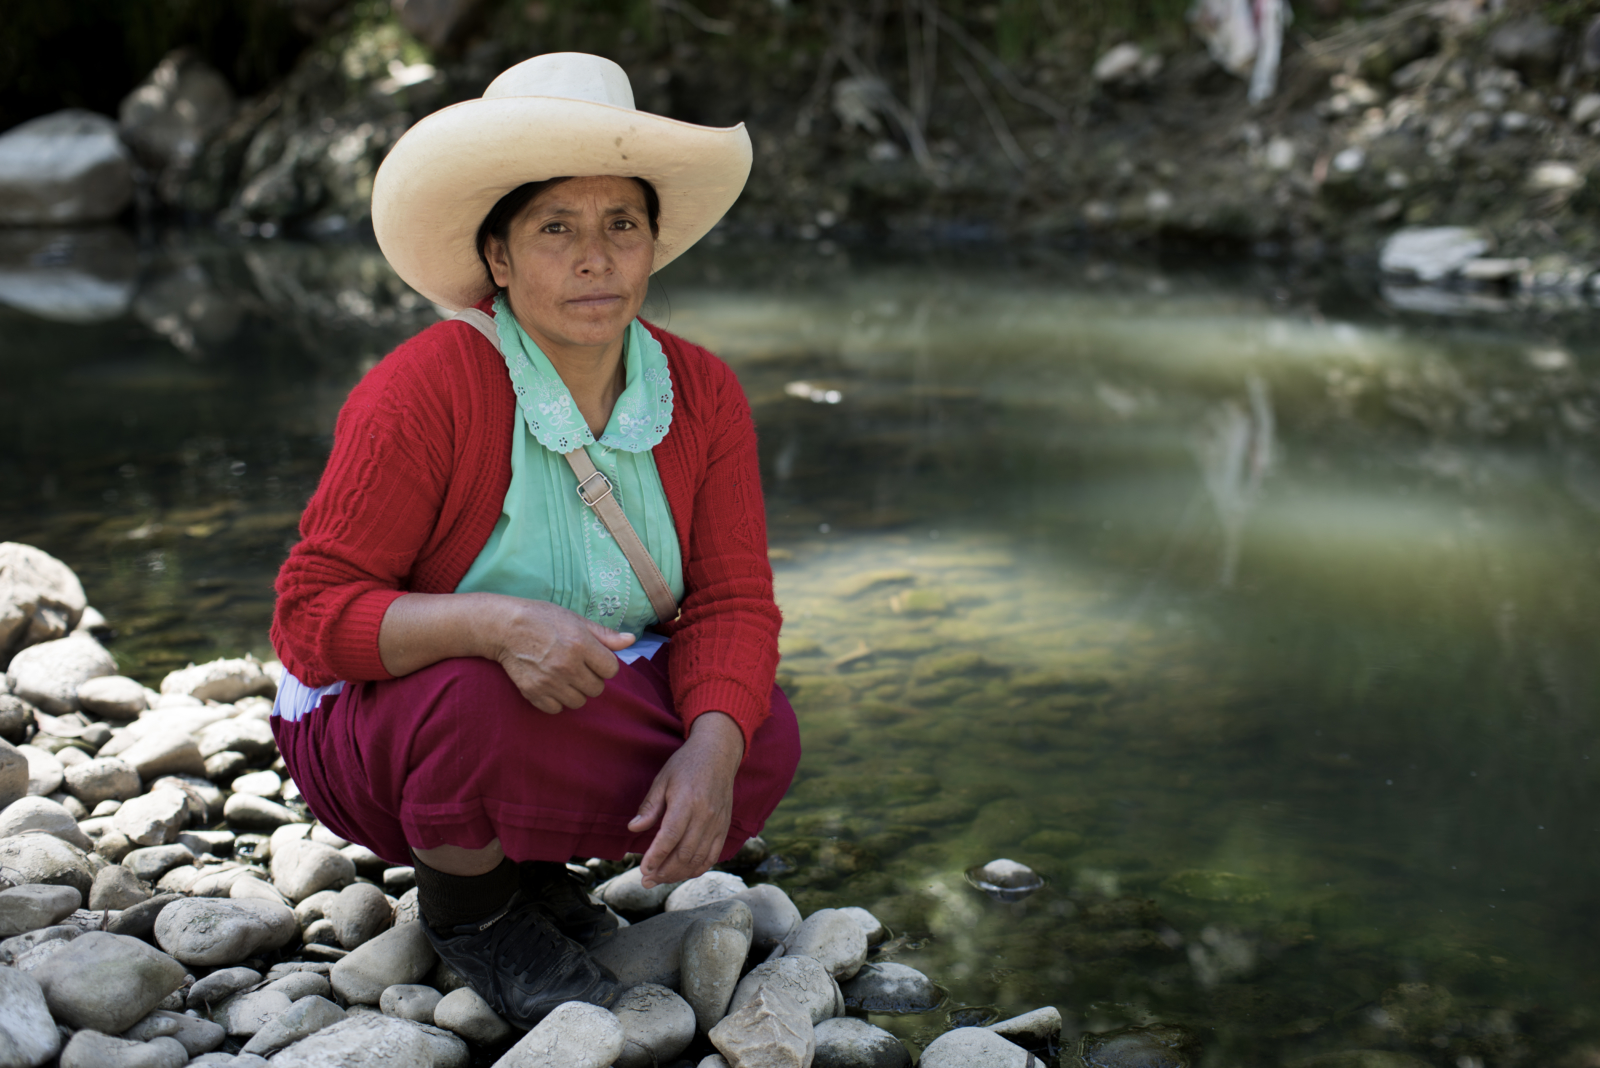 Peru: Human rights defender Máxima Acuña criminalised by unsubstantiated criminal prosecution for land invasion